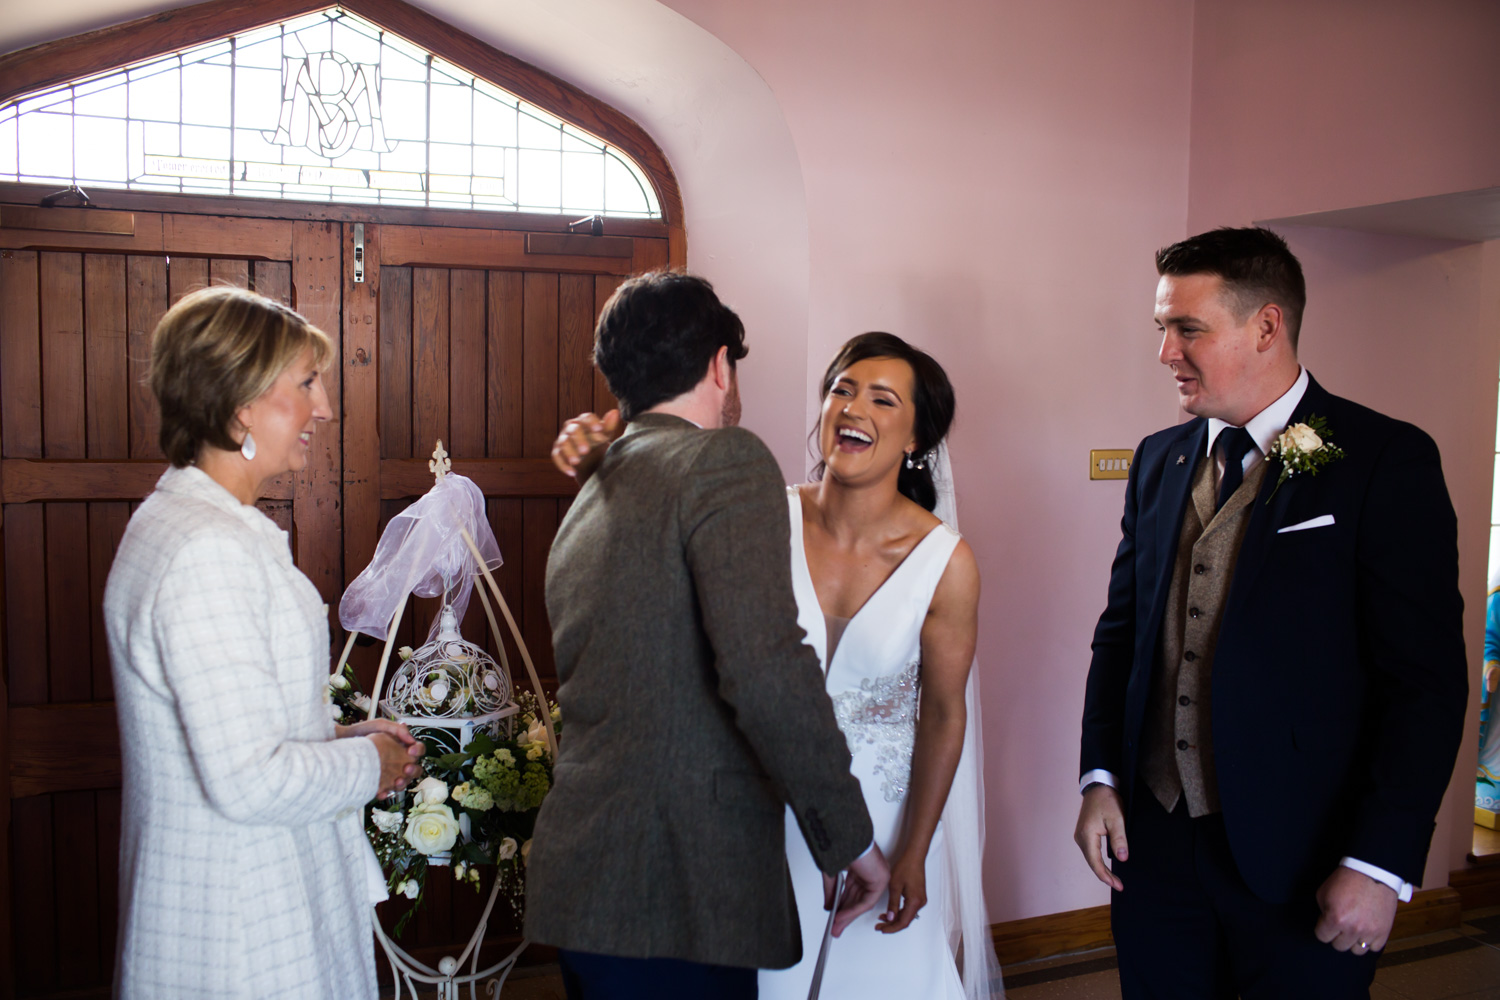 Mark_Barnes_Northern_Ireland_wedding_photographer_redcastle_hotel_Donegal_Wedding_photography_Donegal_wedding_photographer-24.jpg